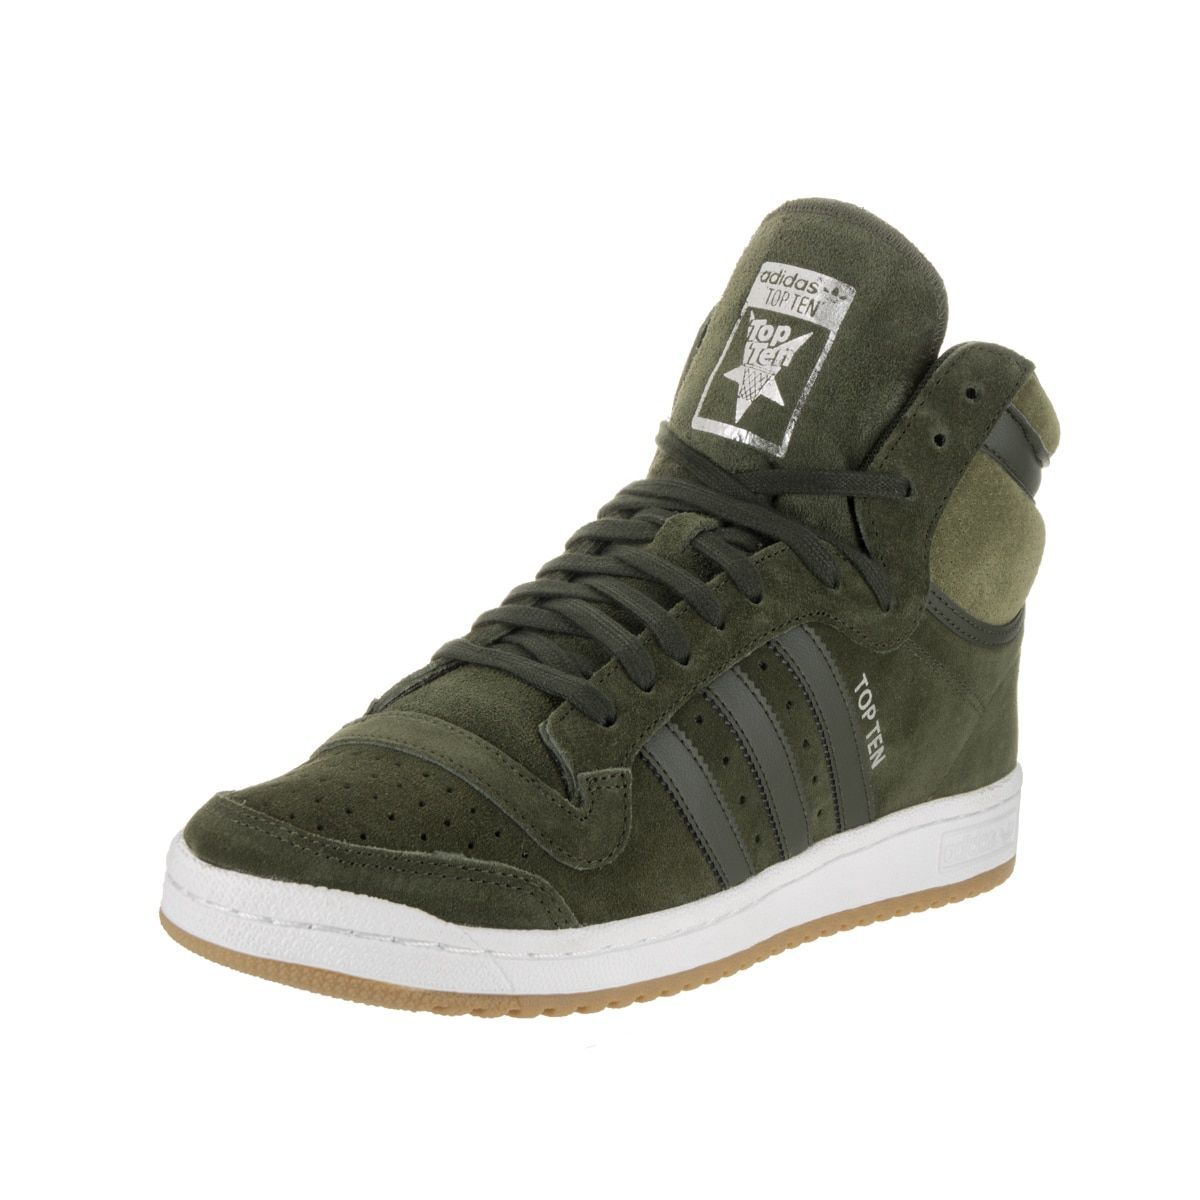 8bb2882a14 Accessorize a casual outfit with these Adidas men s shoes. These ...